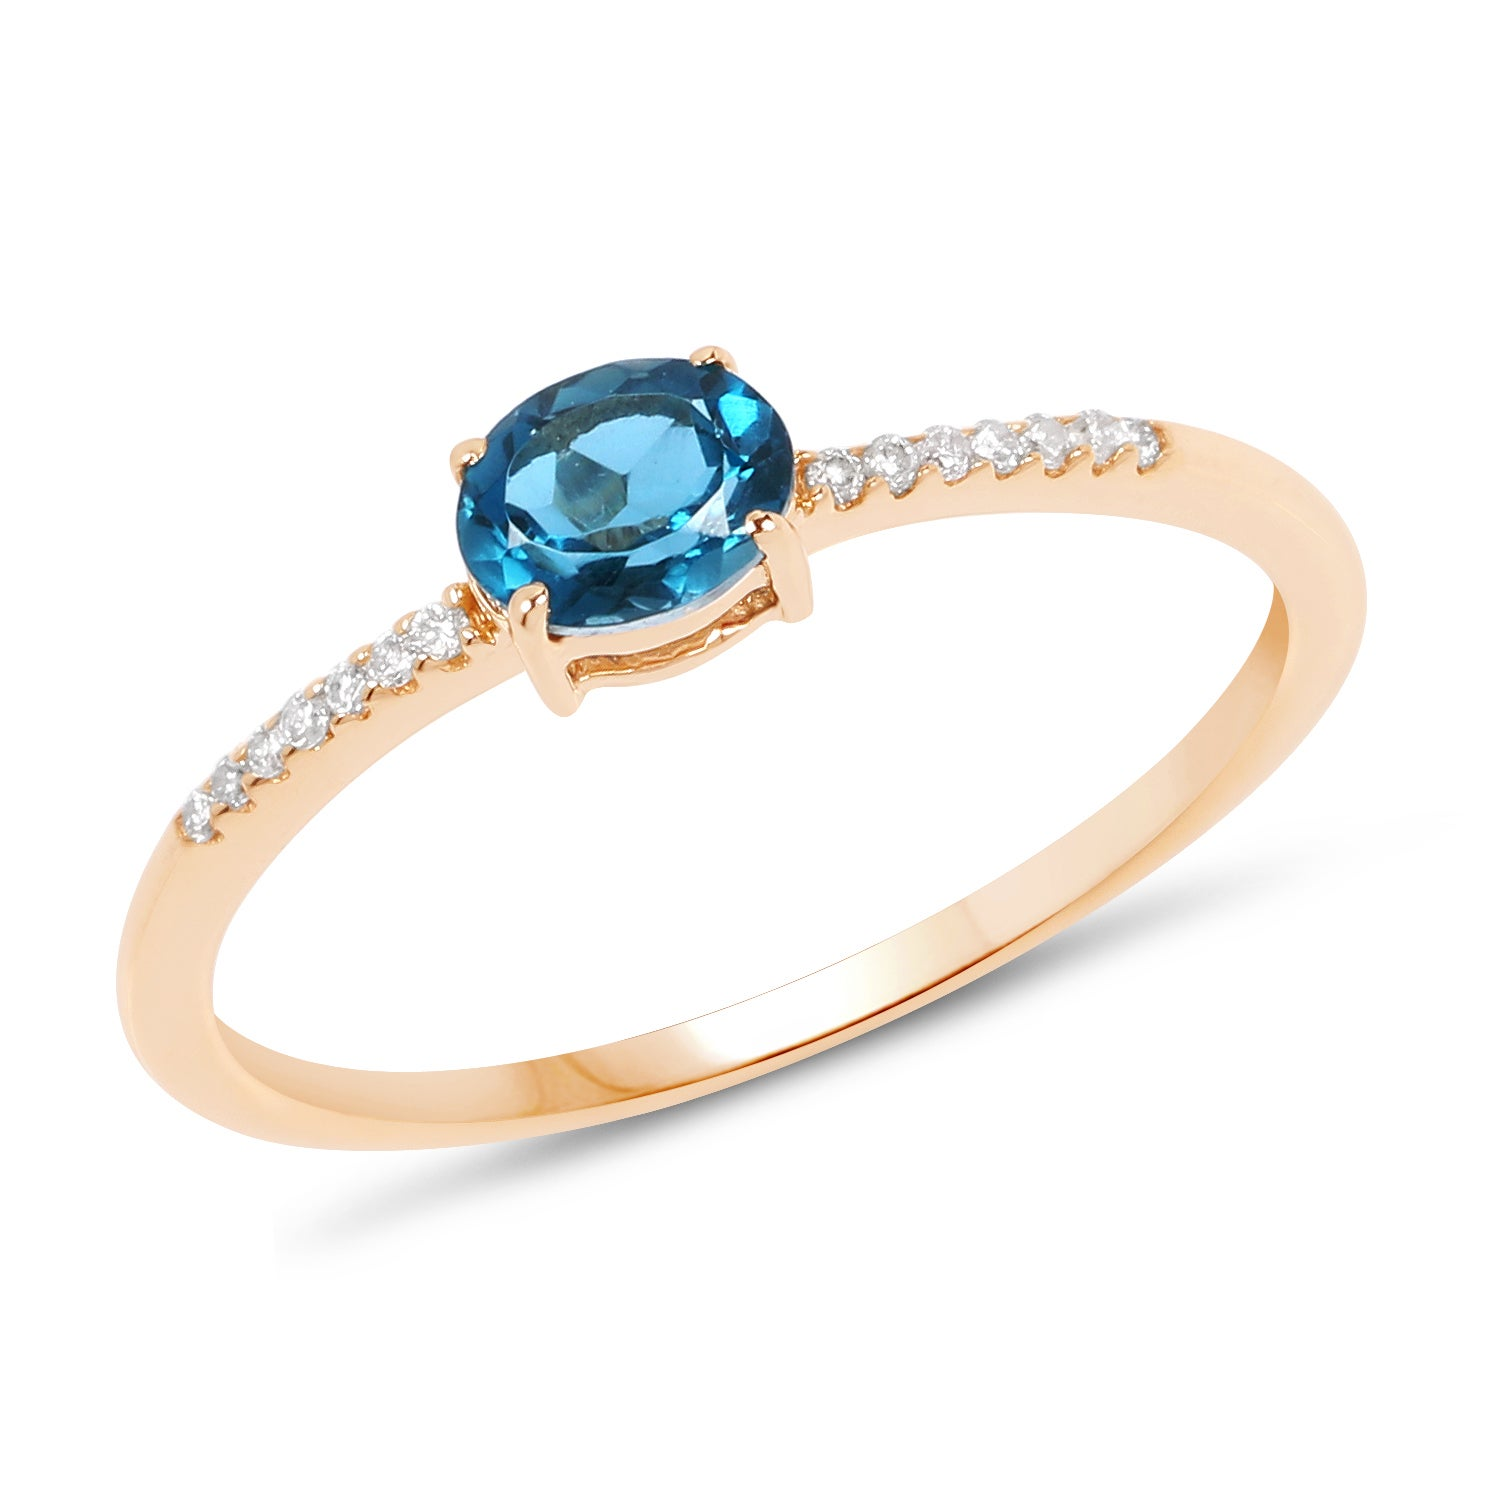 Malaika 14k Yellow Gold 1/2ct TGW London Blue Topaz and W...